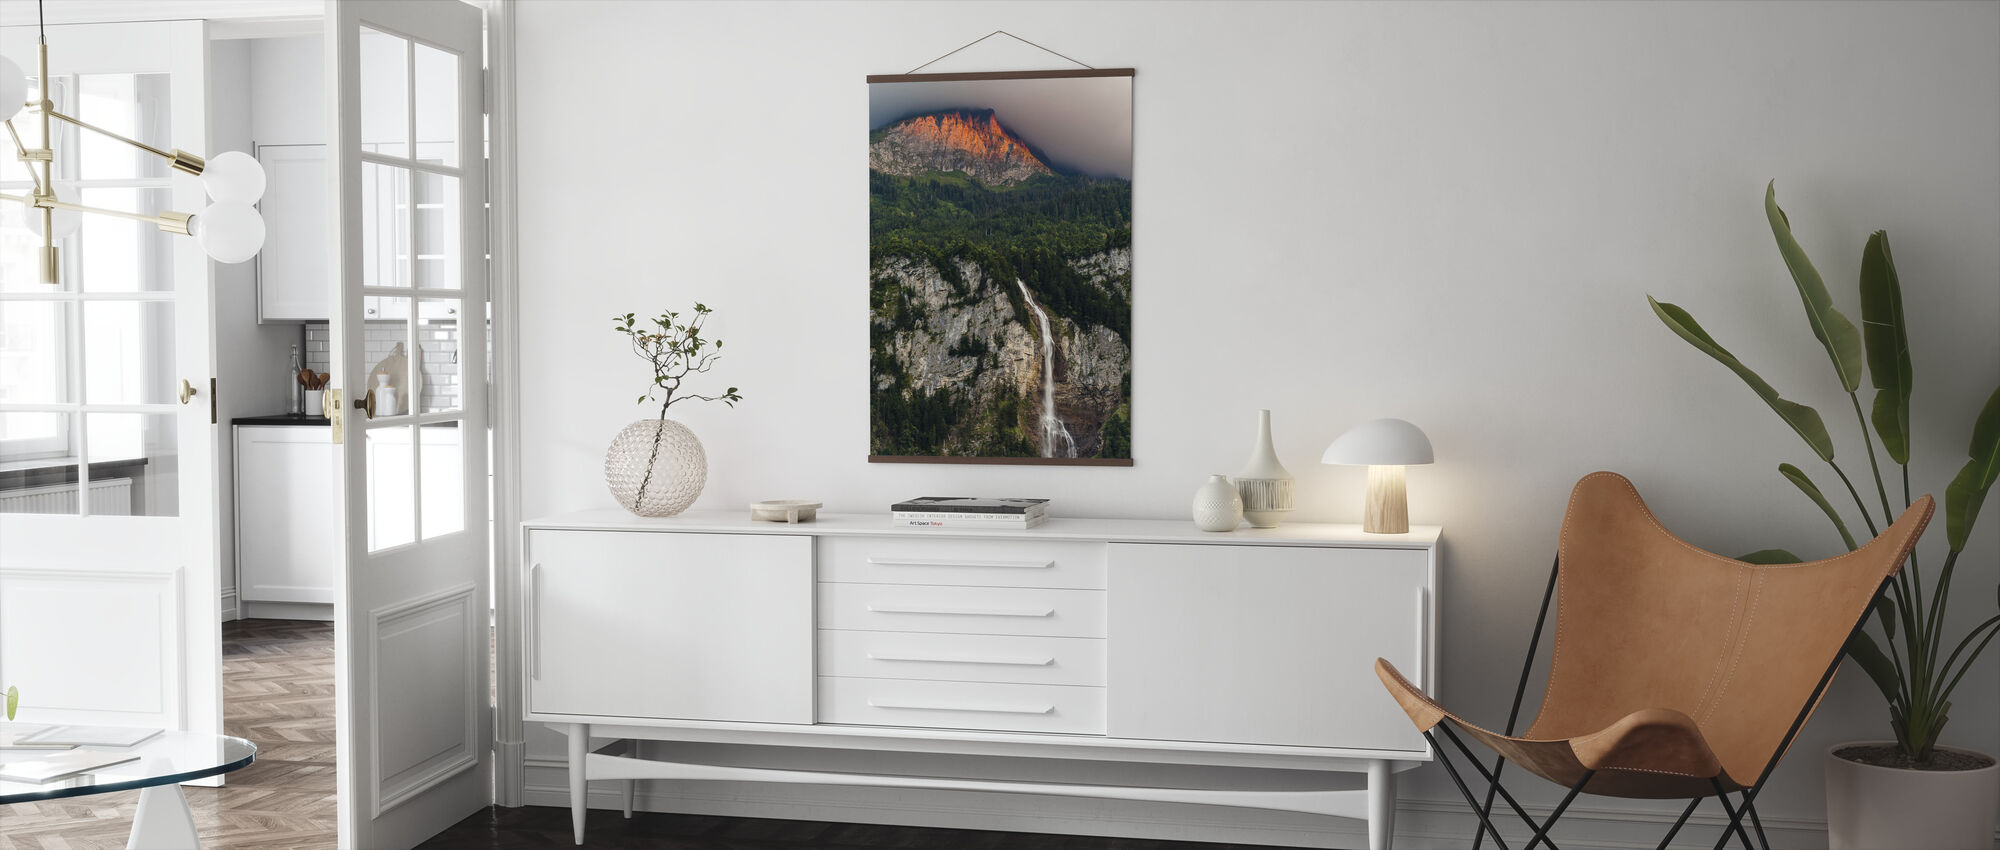 Touched by Light - Poster - Living Room